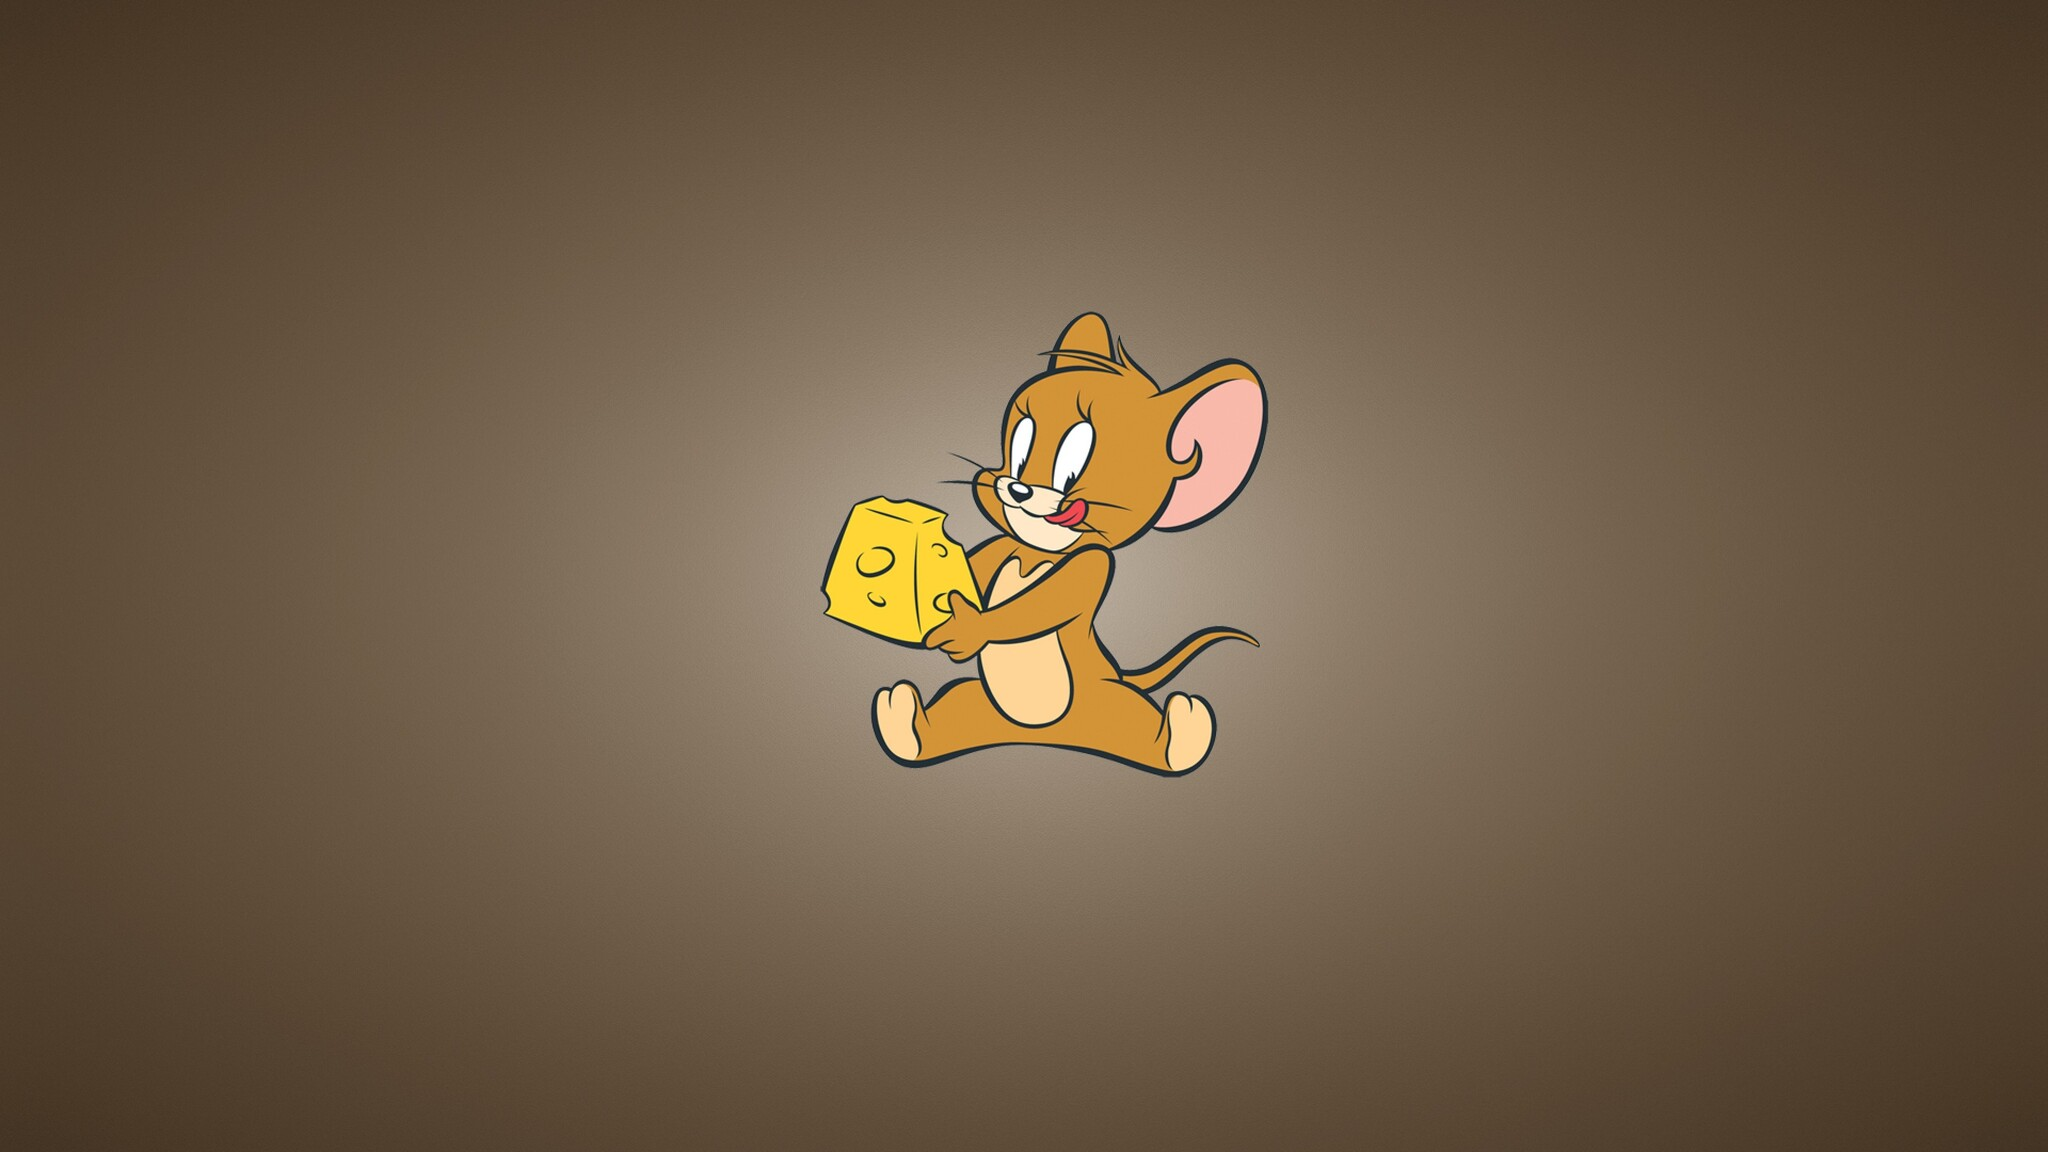 Cute Wallpaper For Computer Food 2048x1152 Tom And Jerry 2048x1152 Resolution Hd 4k